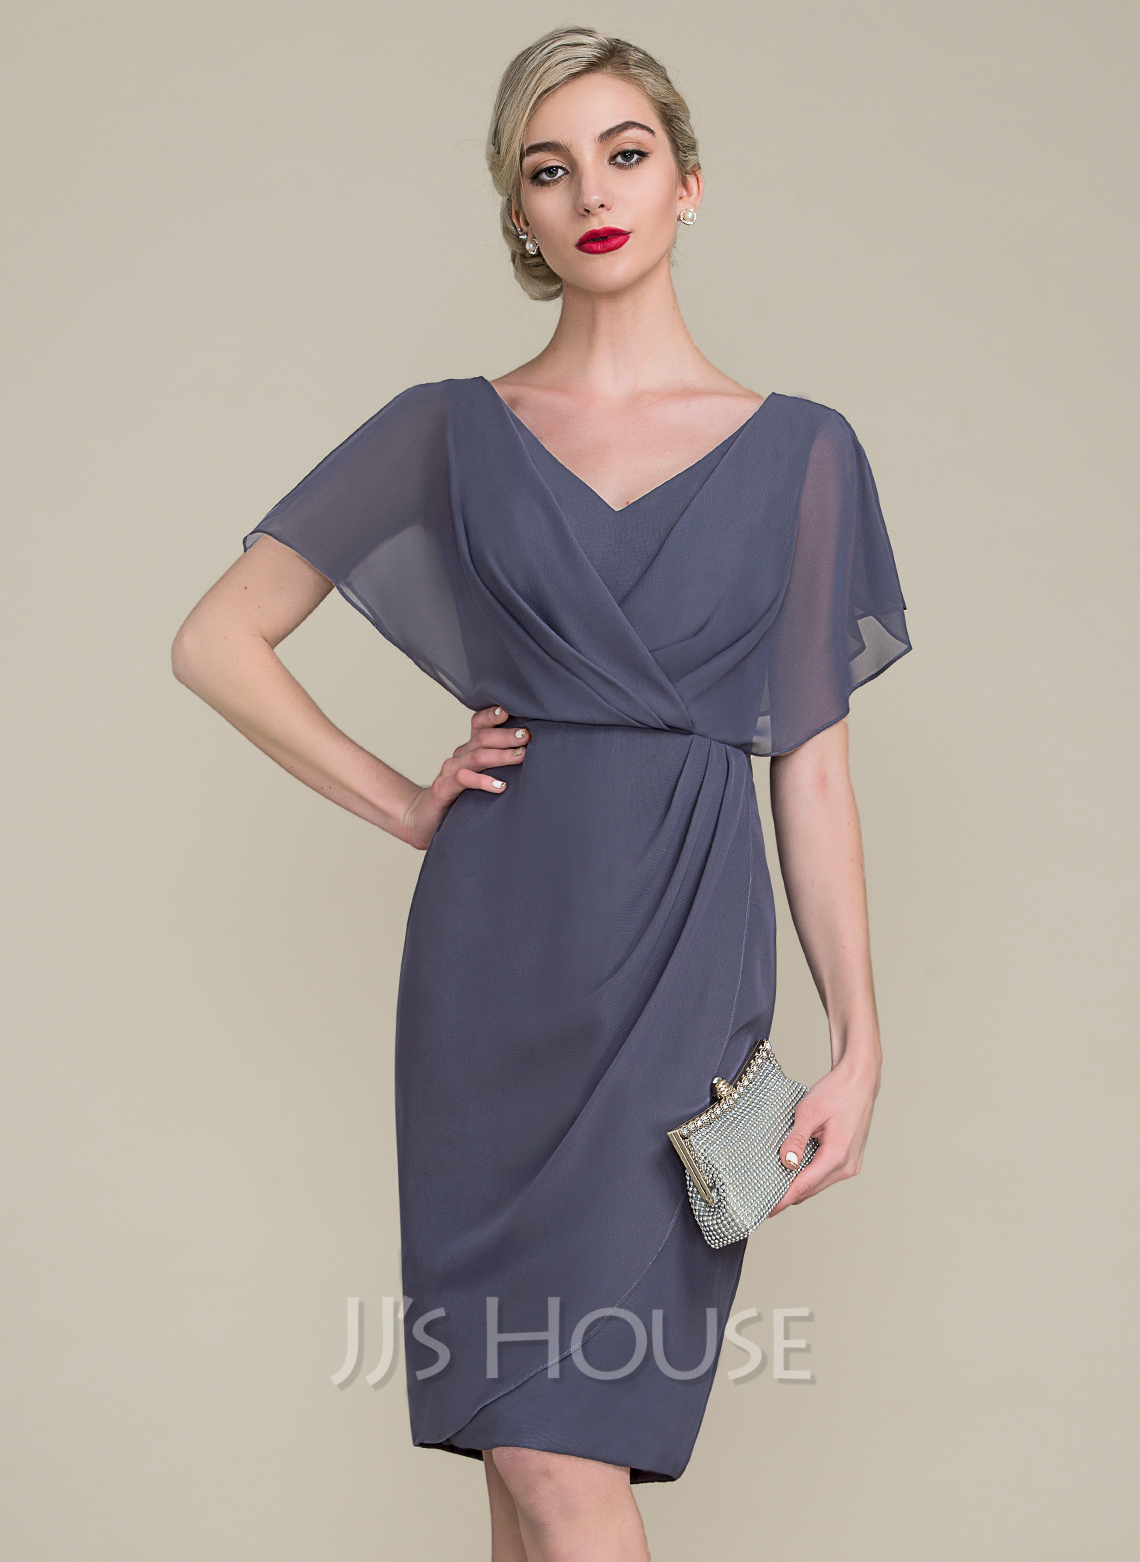 Max Price 100, Special Occasion Dresses: Formal Dresses and More ...